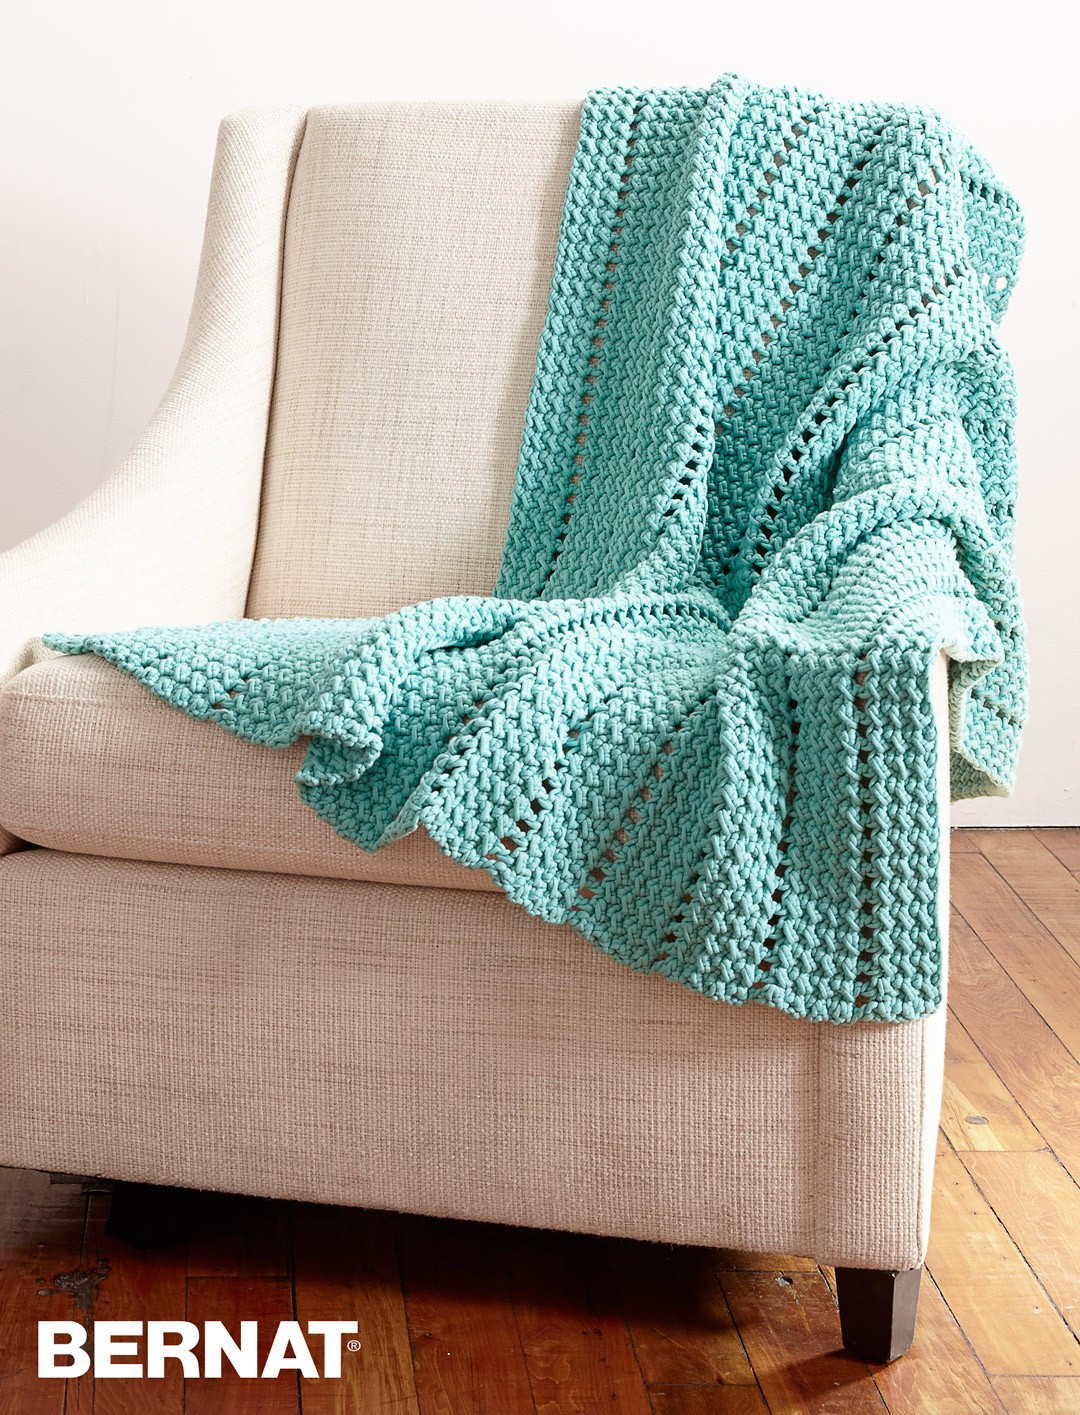 Bernat Crochet Blanket Awesome Bernat Eyelets and Textures Blanket Crochet Pattern Of Incredible 49 Images Bernat Crochet Blanket